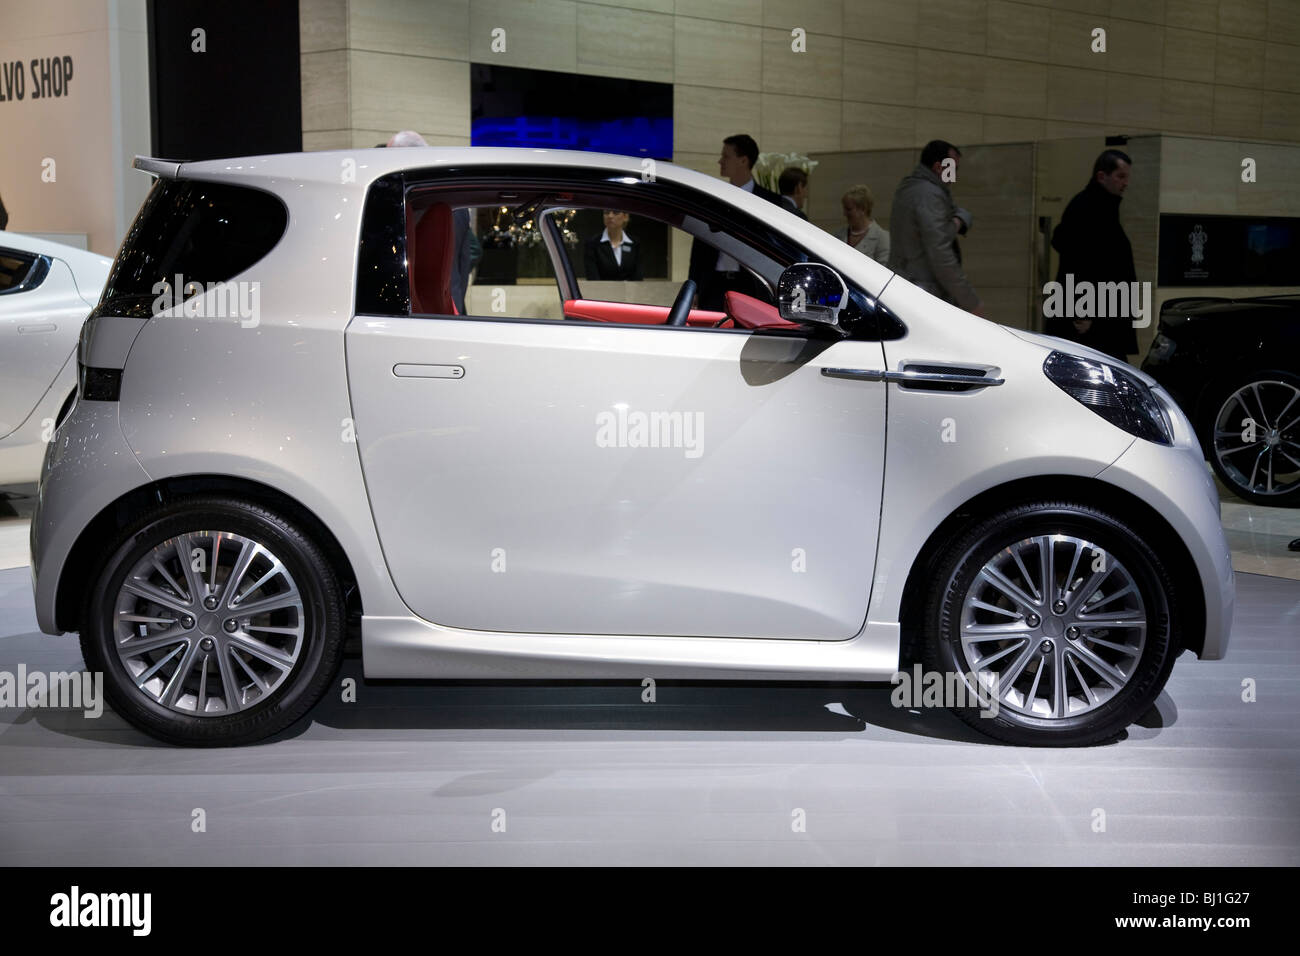 Aston Martin Cygnet Toyota IQ Based City Car At A Motor Show